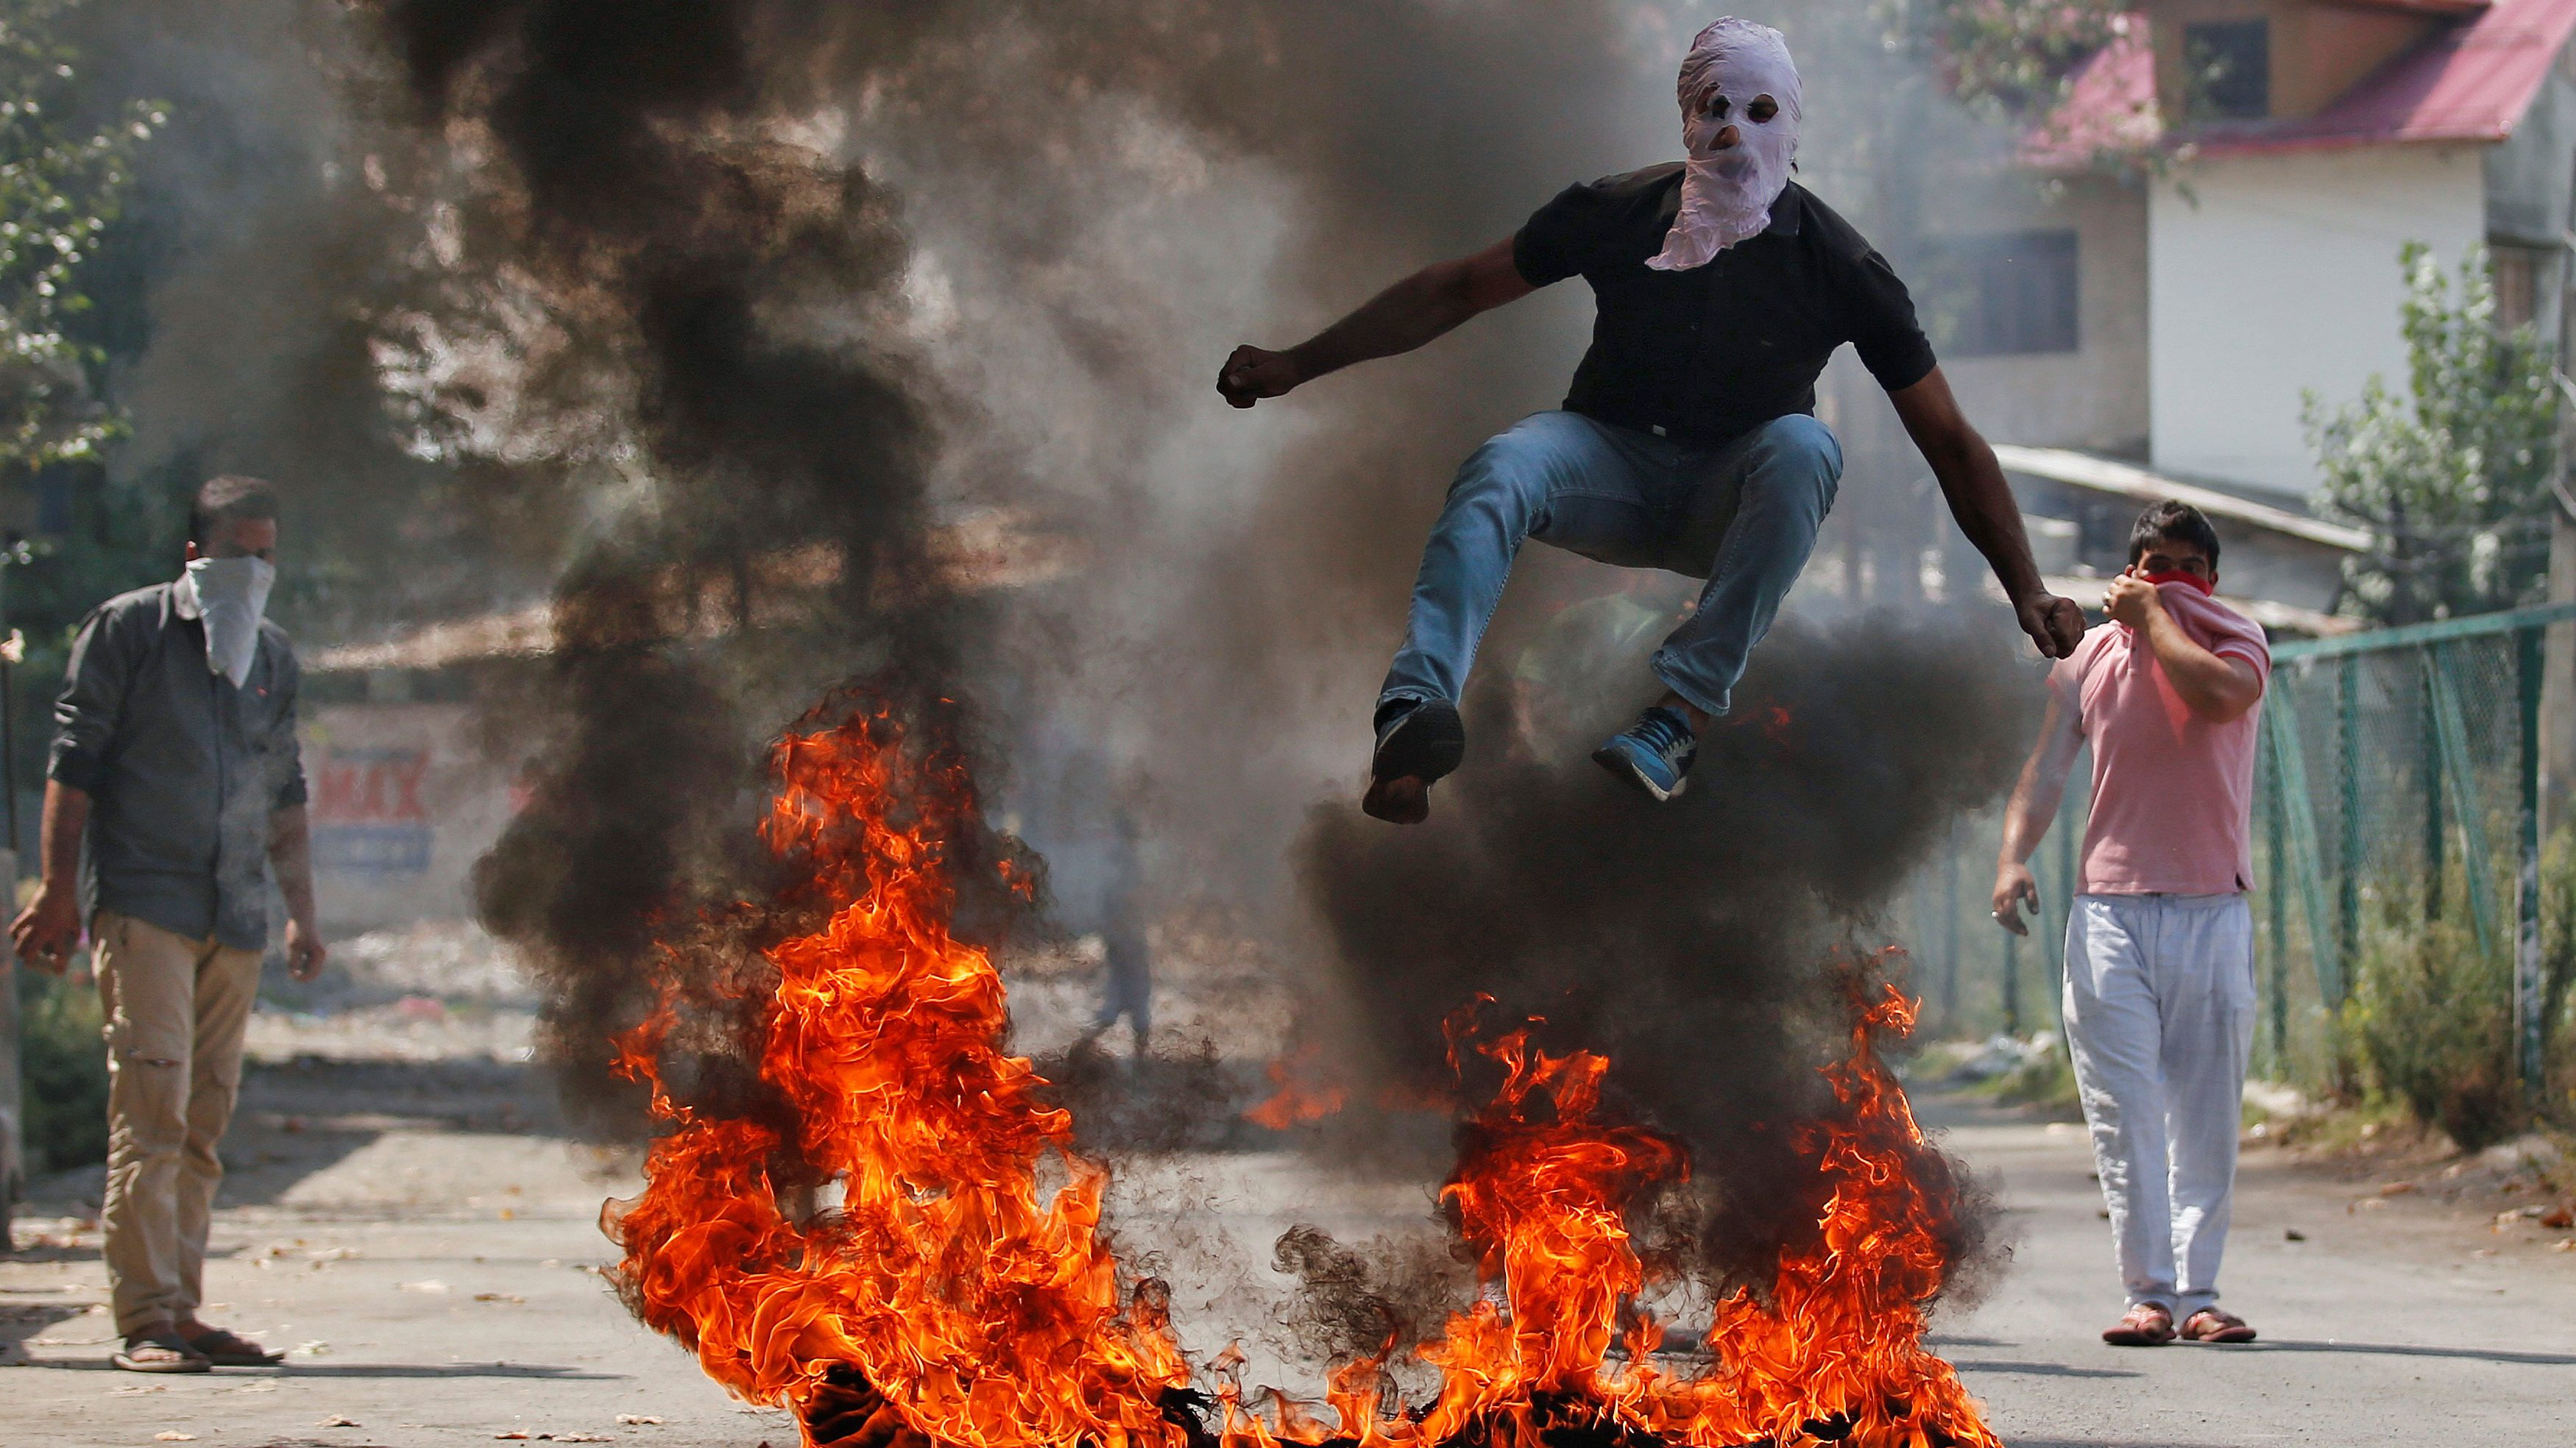 A man in a balaclava jumps over burning debris during a protest against the recent killings in Kashmir, in Srinagar